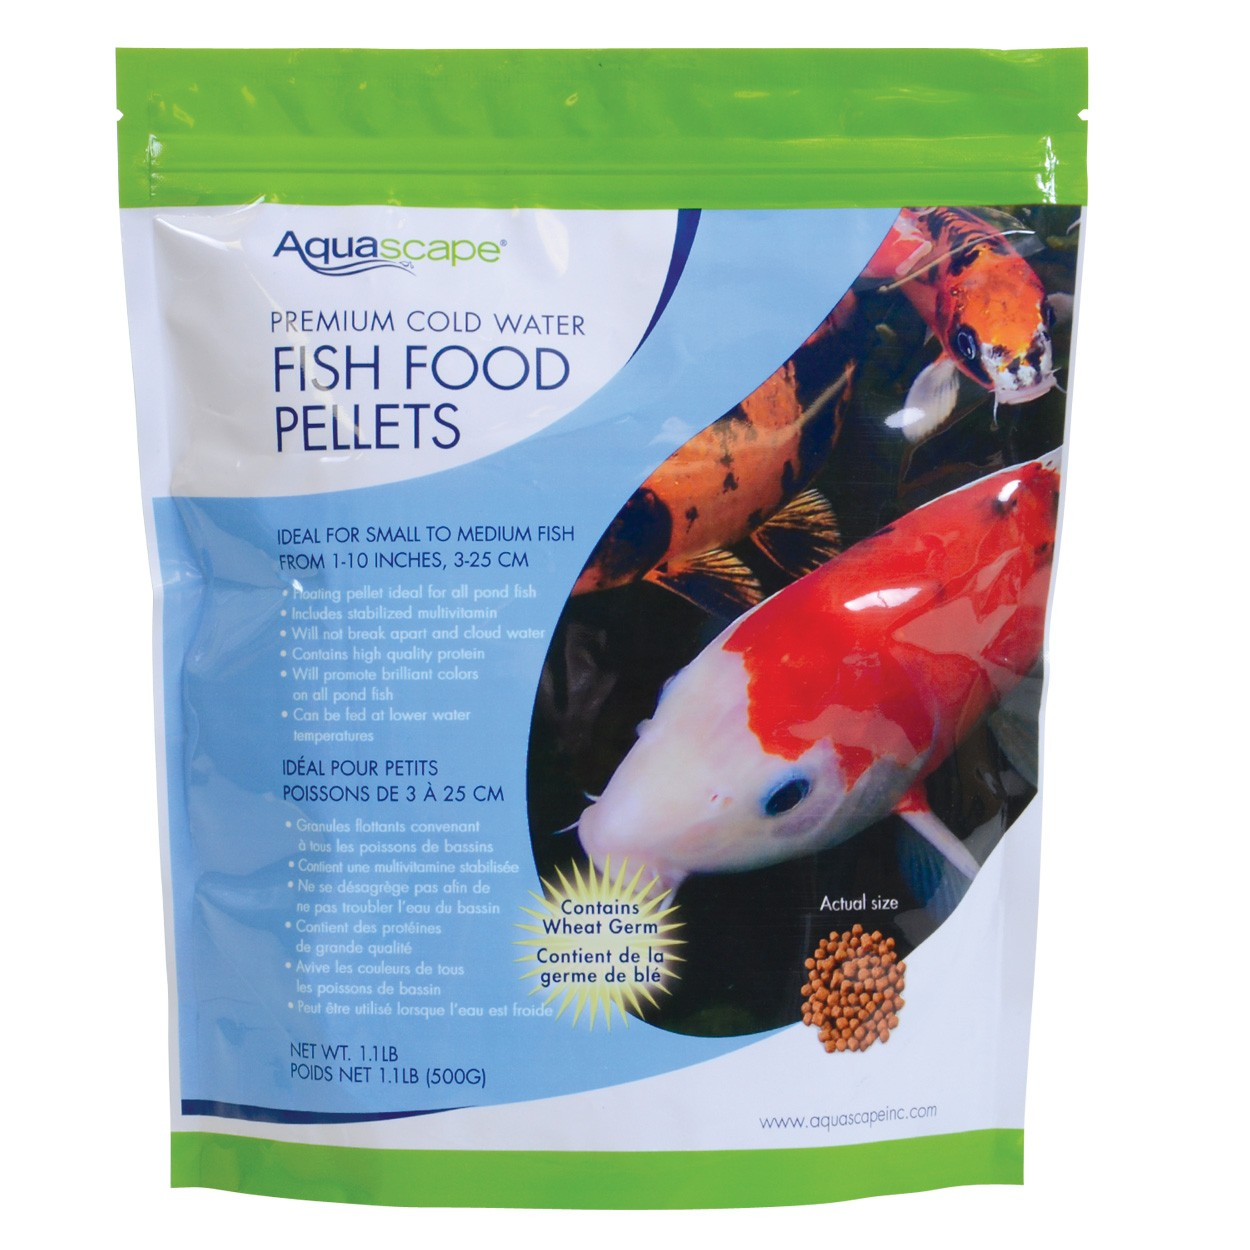 Aquascape premium cold water fish food pellets for Pond fish food